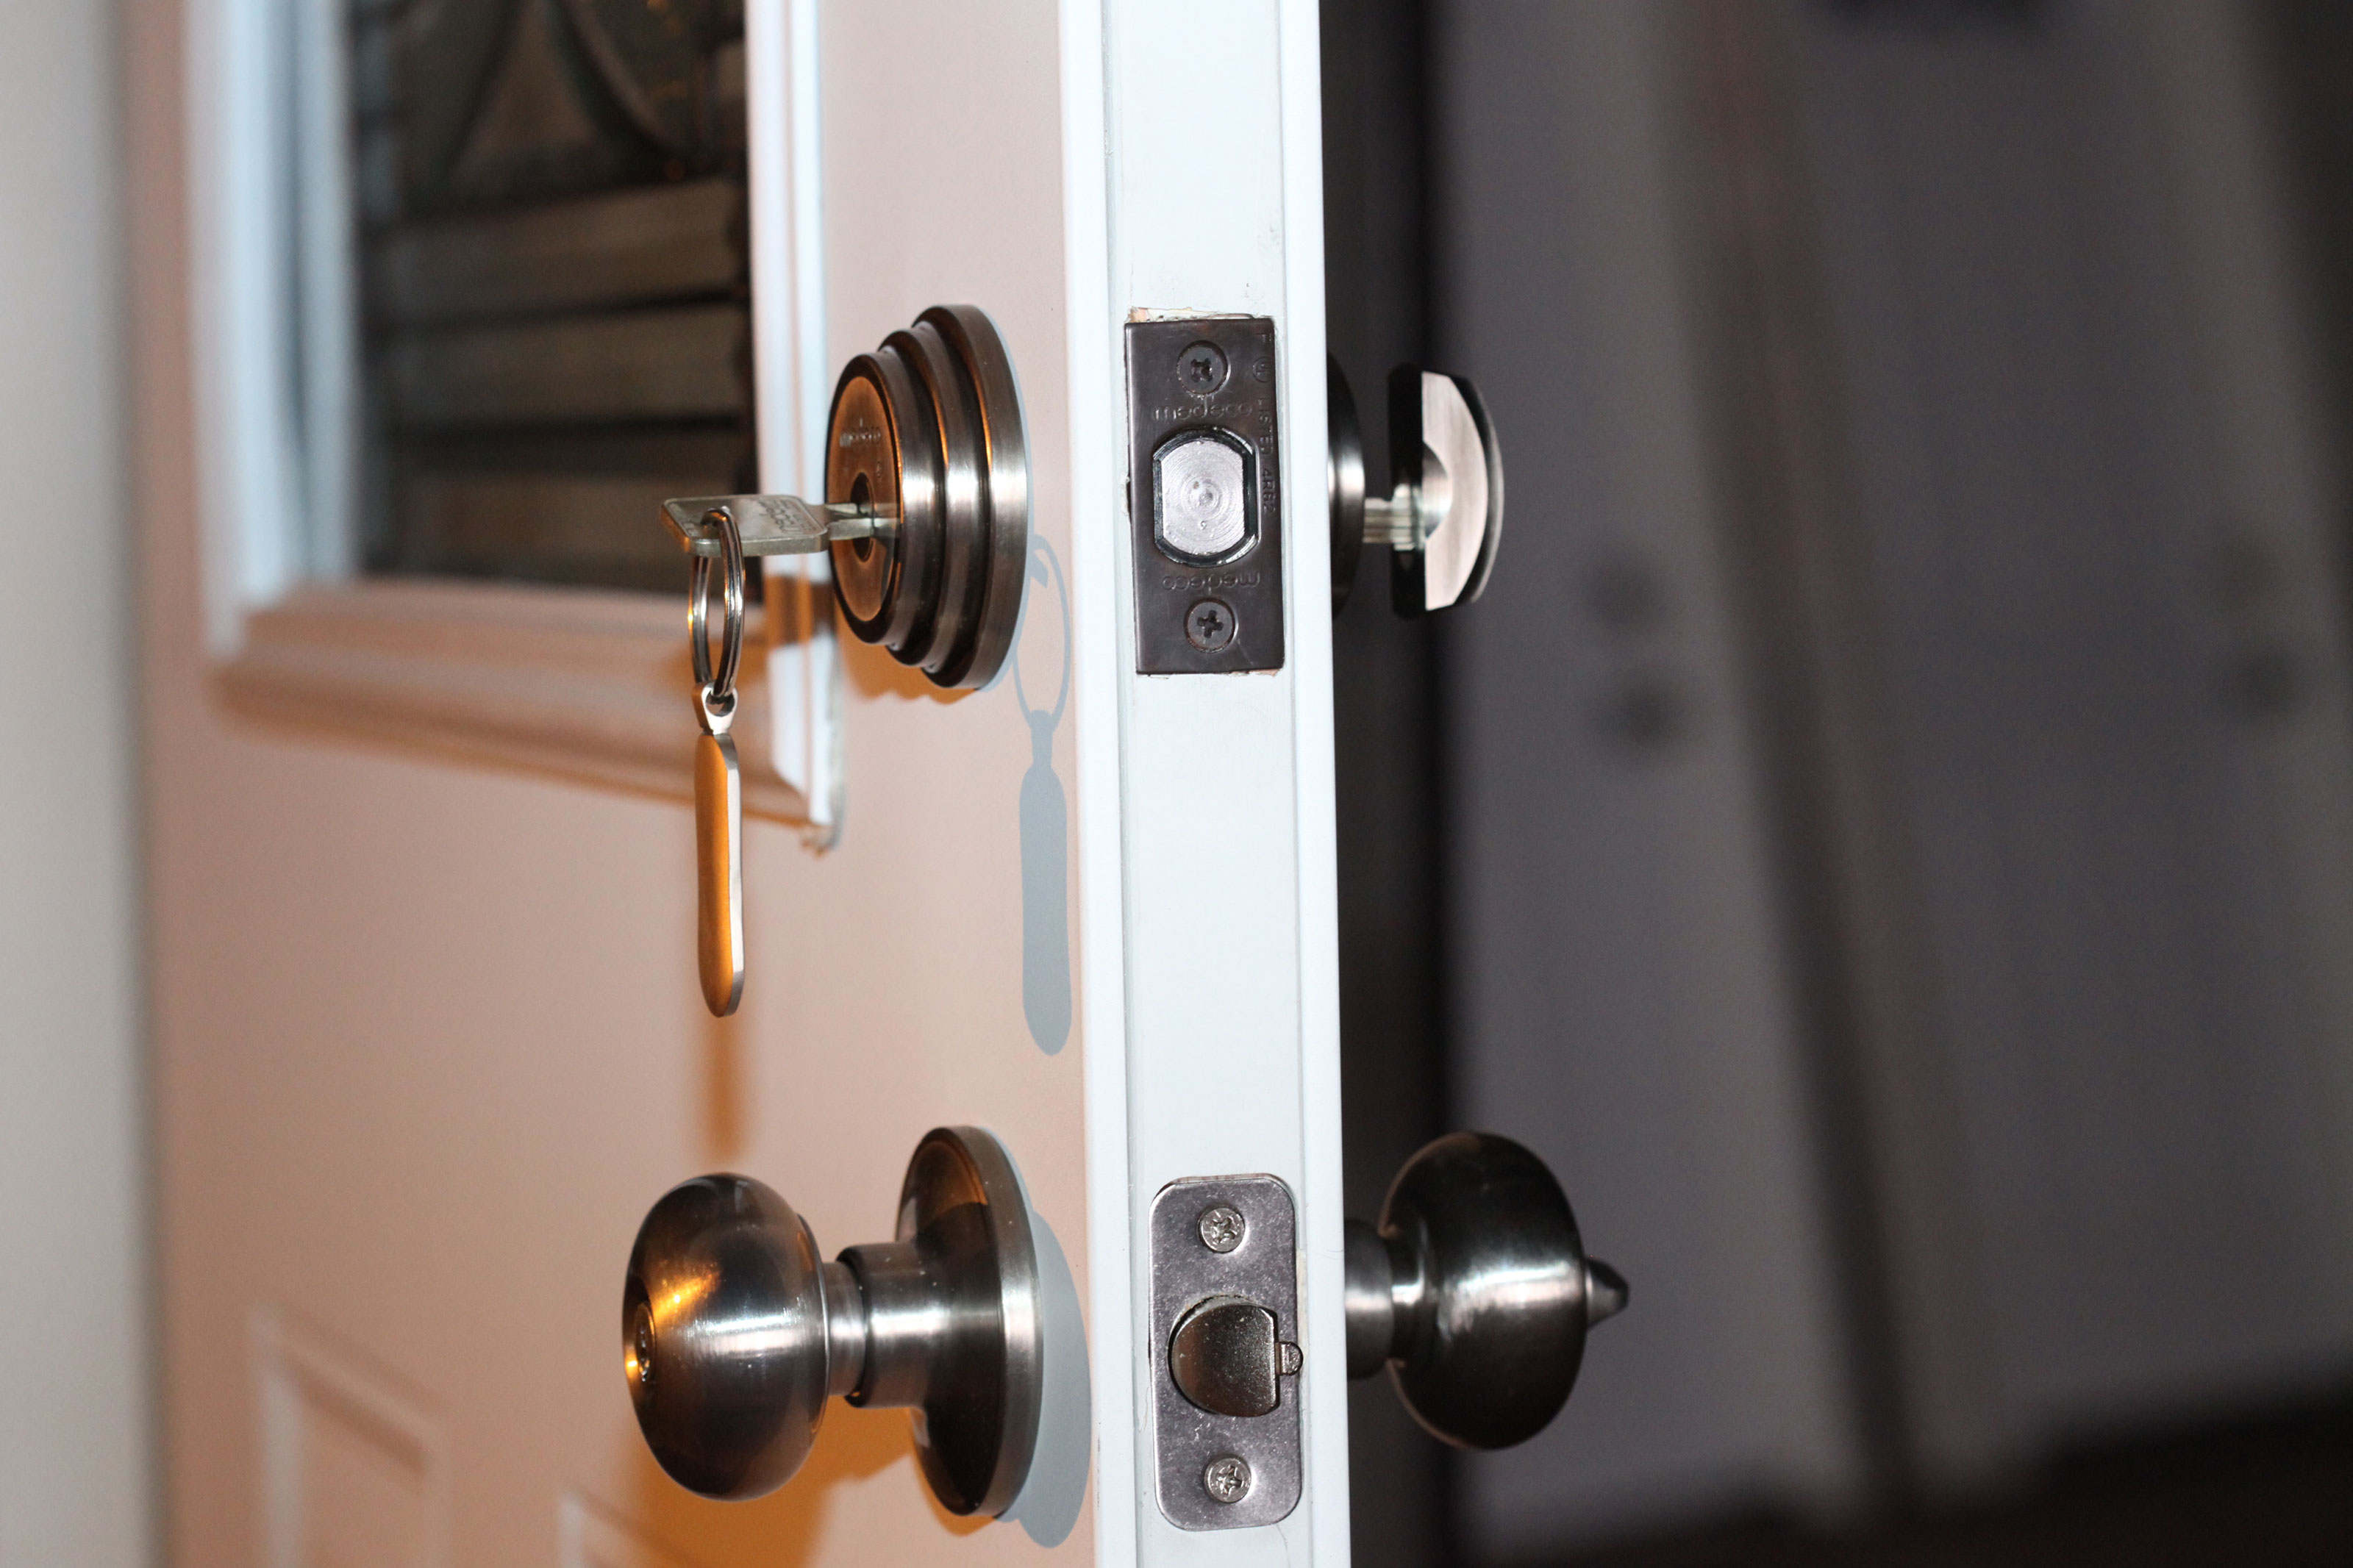 Are Electronic Door Locks Safe? | Best Locks for Home